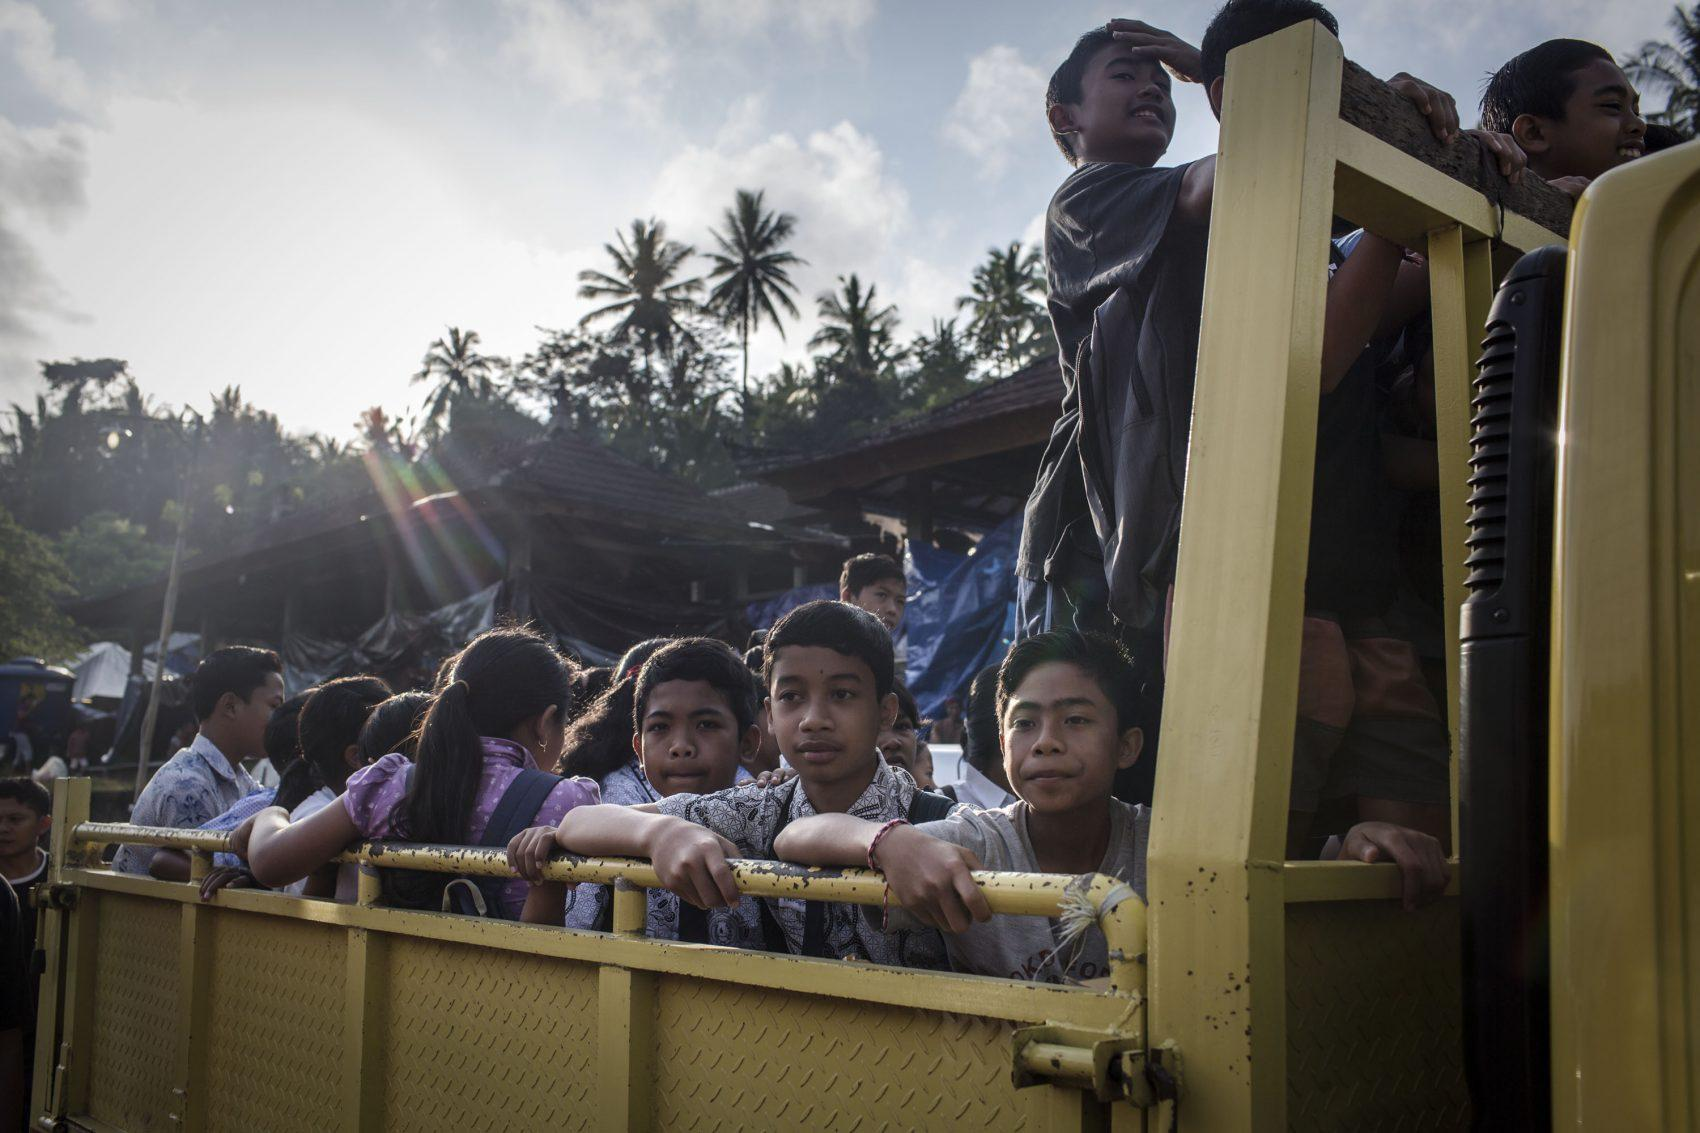 Evacuee children on a truck as they head off to a temporary school on Sept. 27 2017 in Karangasem regency Bali Indonesia. Indonesian authorities declared a state of emergency as hundreds of tremors are recorded at Bali's Mount Agung volcano and